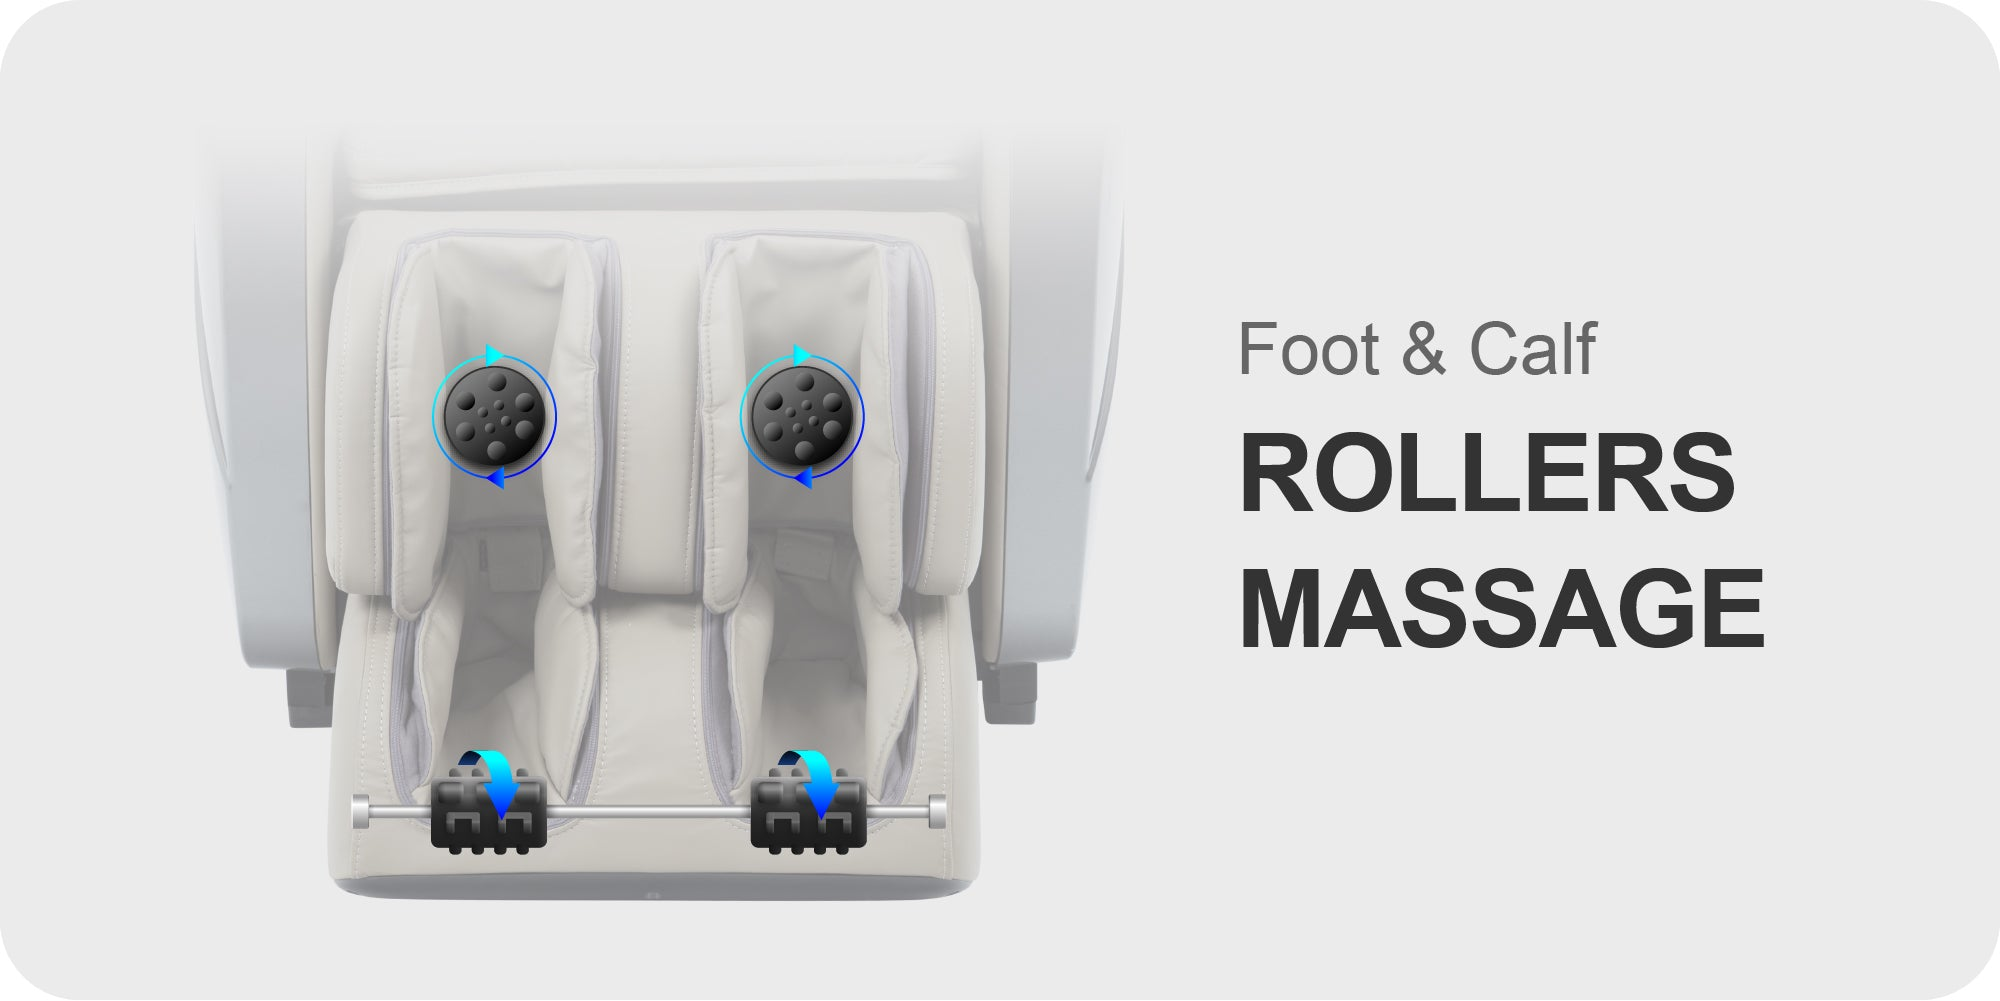 Calf and foot rollers